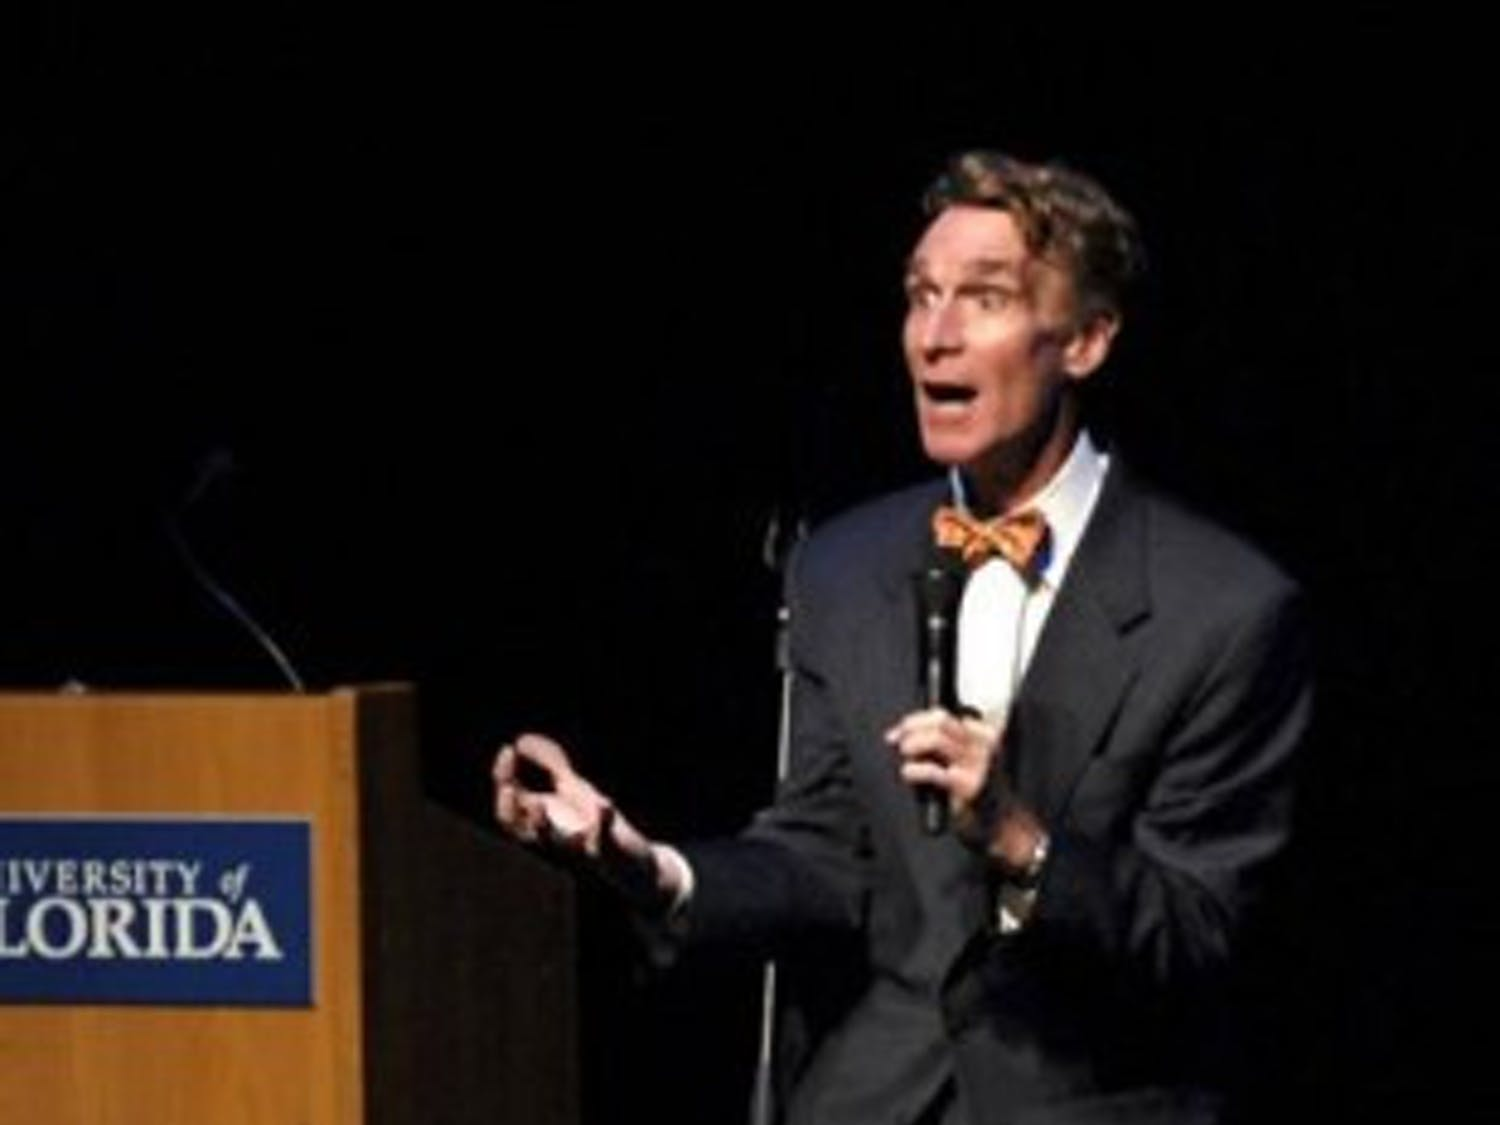 (Nicole Safker / Alligator Staff) Scientist and TV personality Bill Nye gestures during his speech at the Phillips Center in 2007.